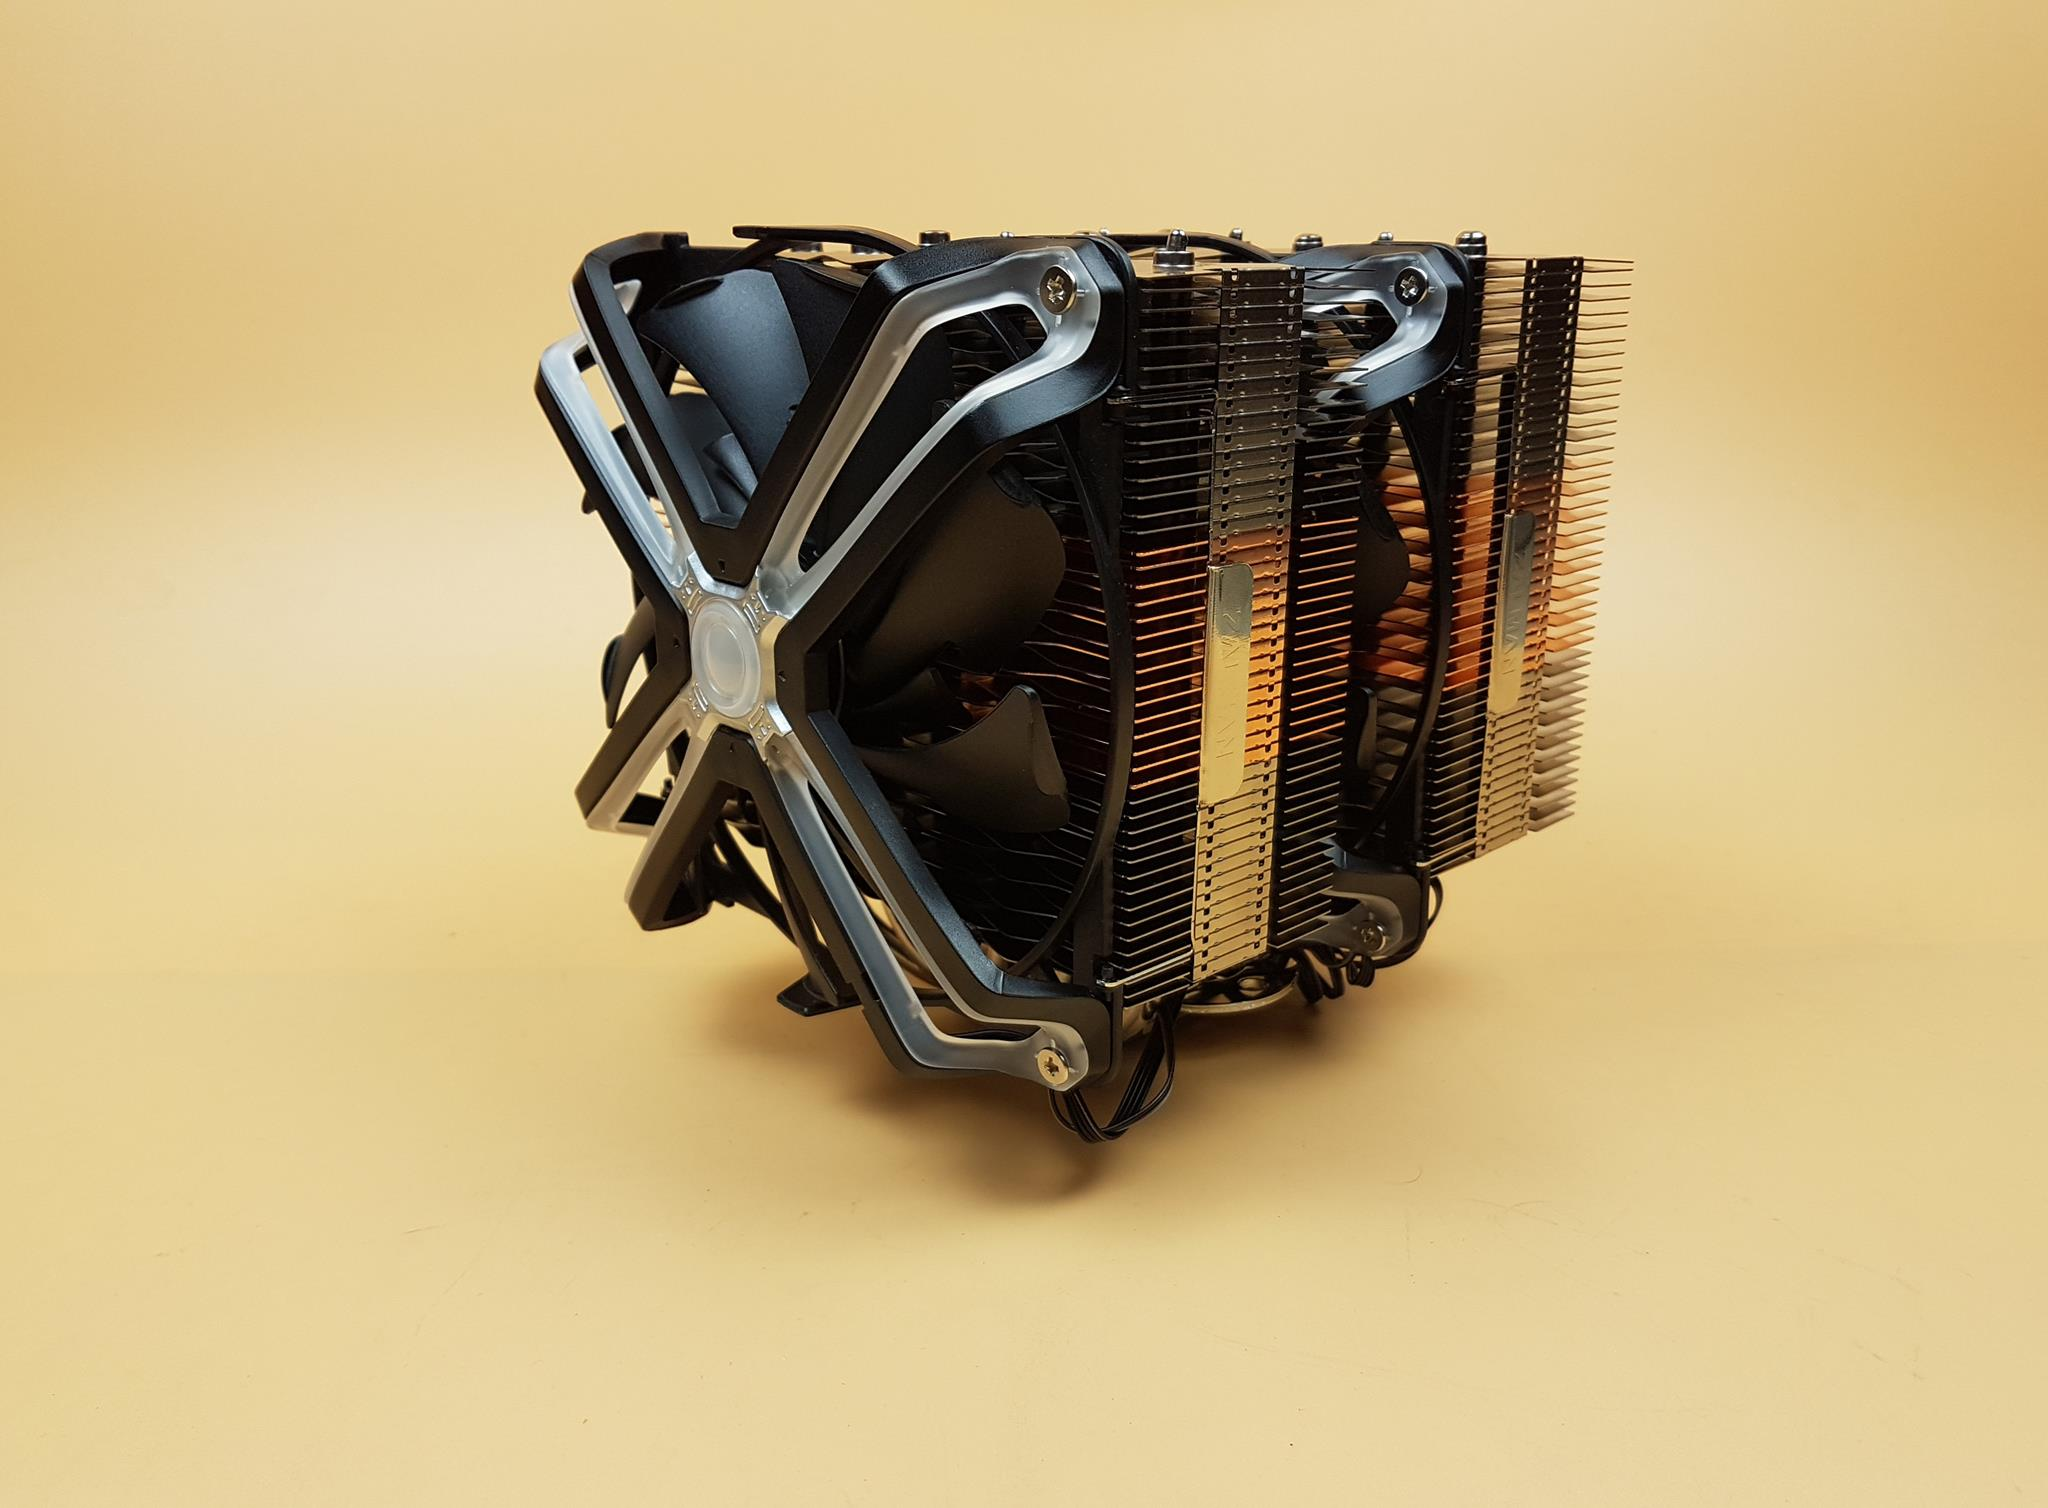 ZALMAN CNPS20X CPU Air Cooler Review